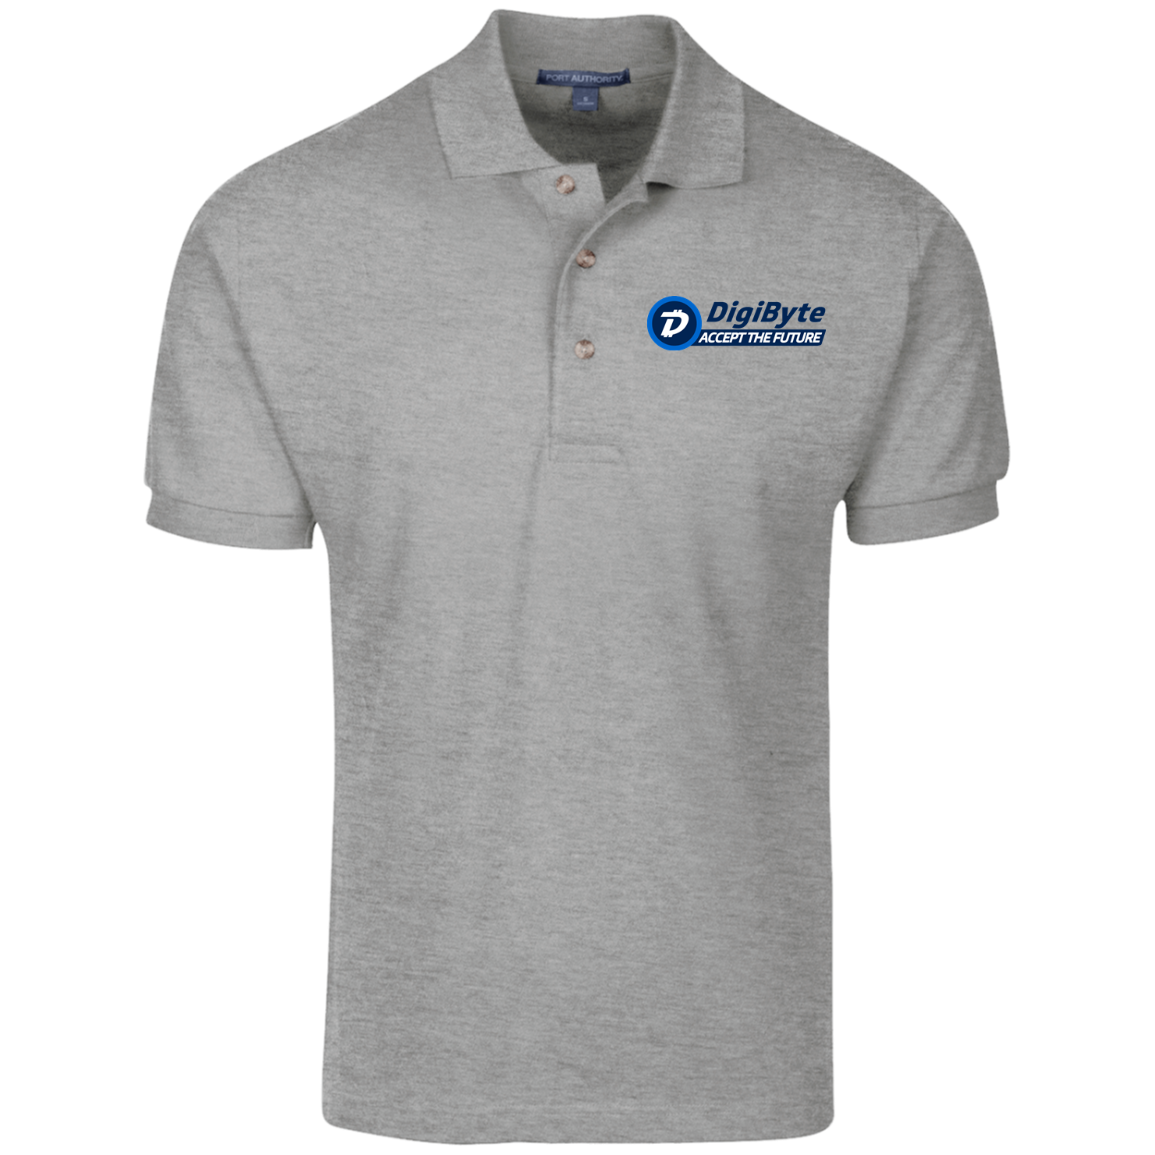 DigiByte Accept the Future – Embroidered Cotton Polo by Port Authority